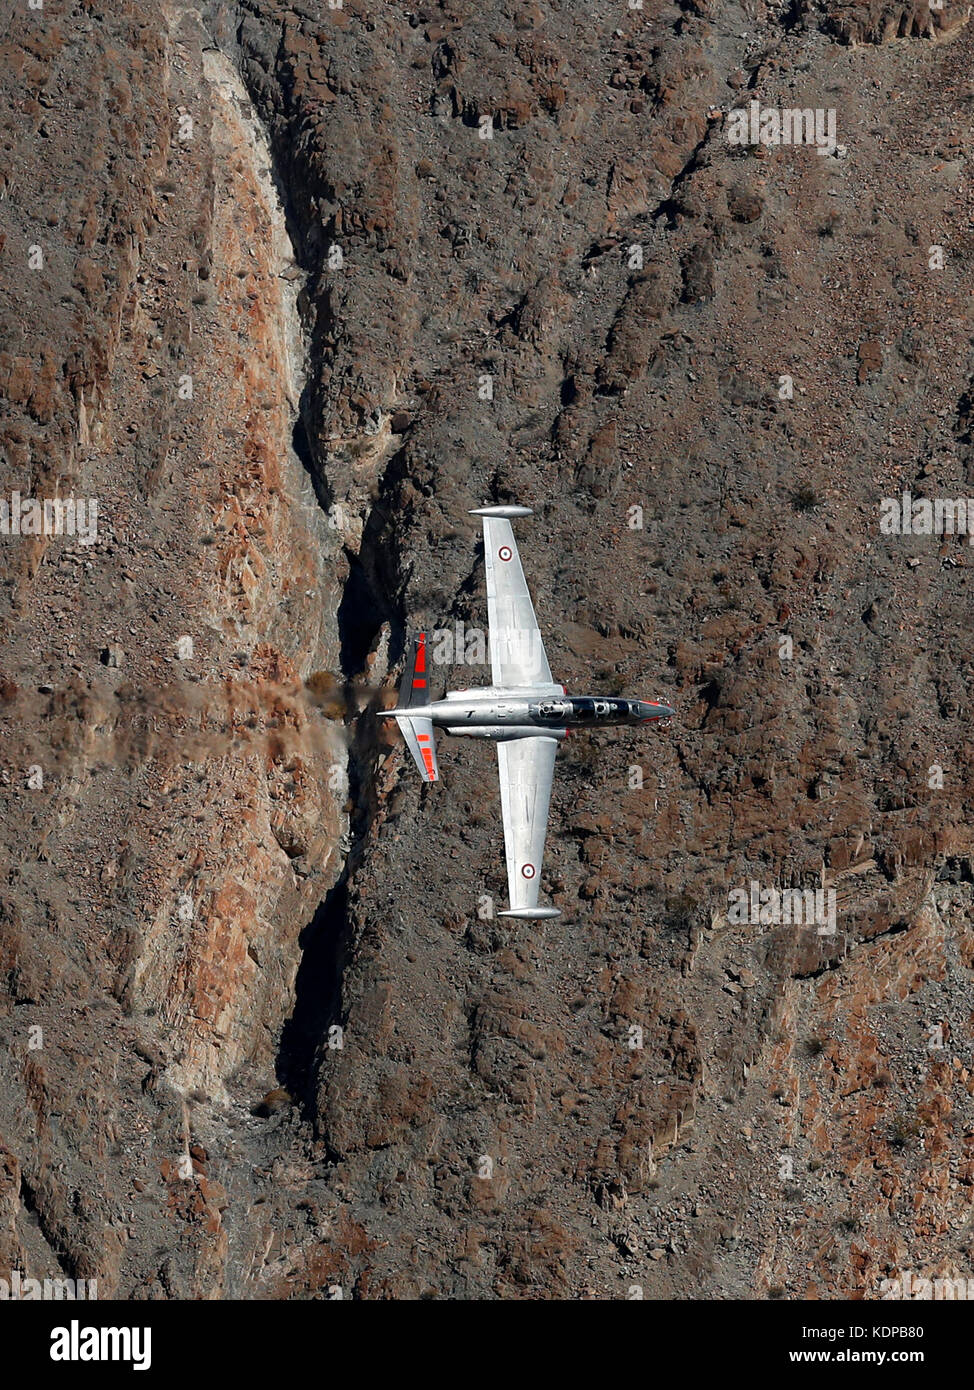 Fouga CM.170 Magister makes a low pass through the Jedi transition in Death Valley National Park, California USA. - Stock Image